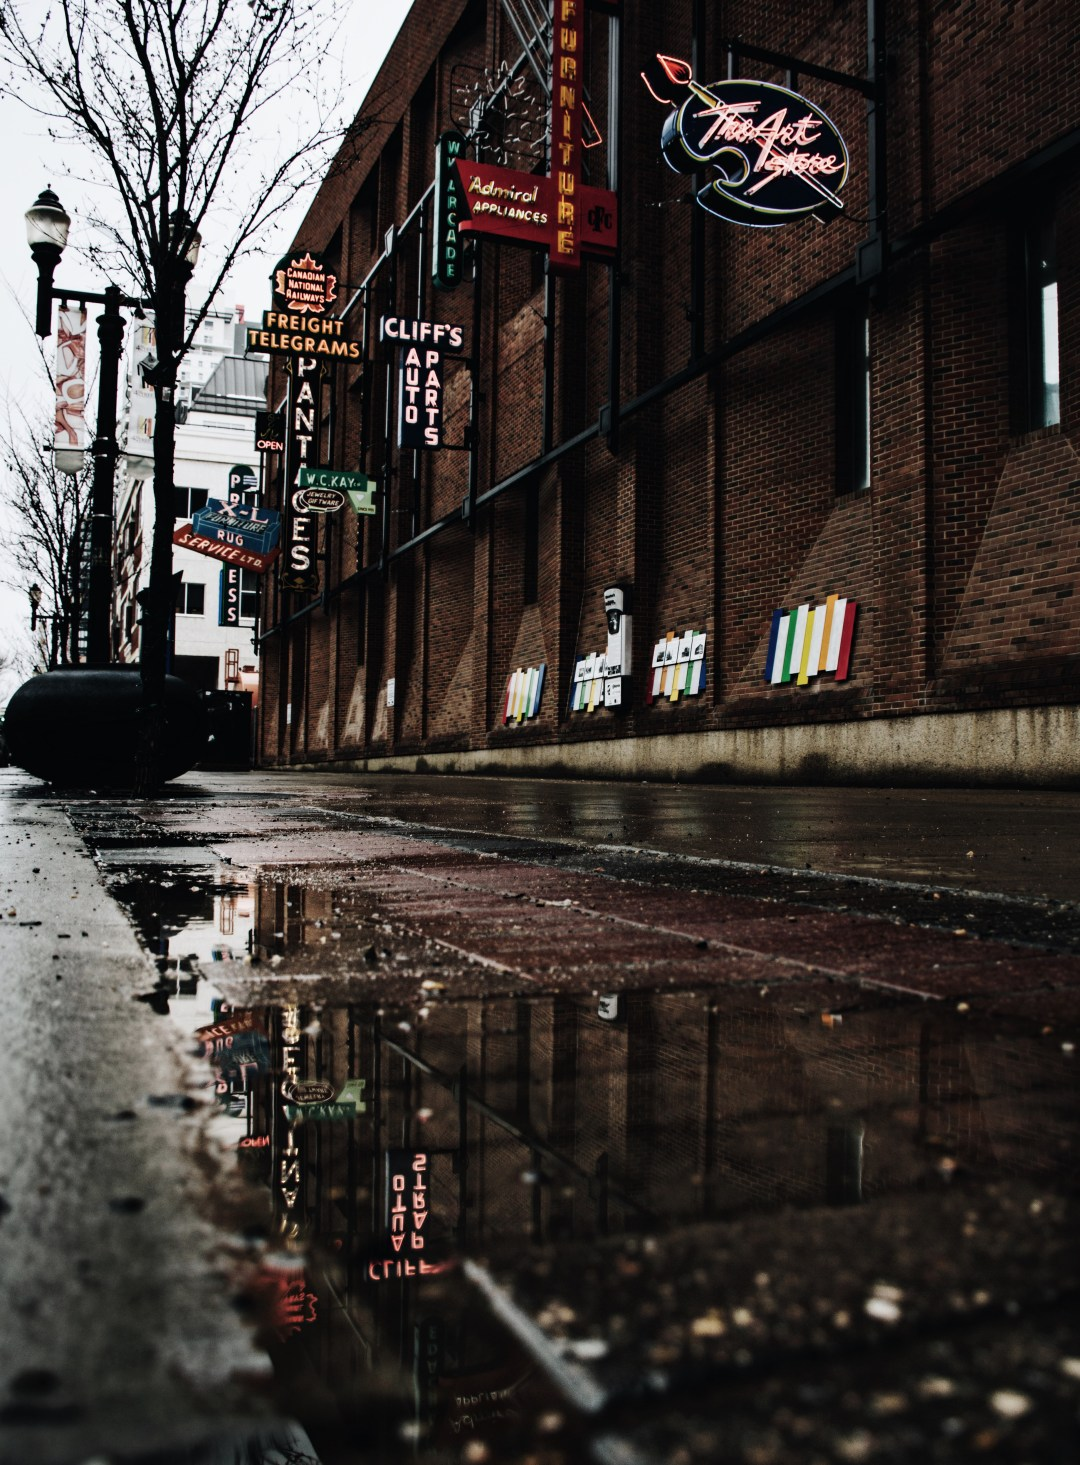 Street Puddle Puddle Reflection And Business Sign Hd